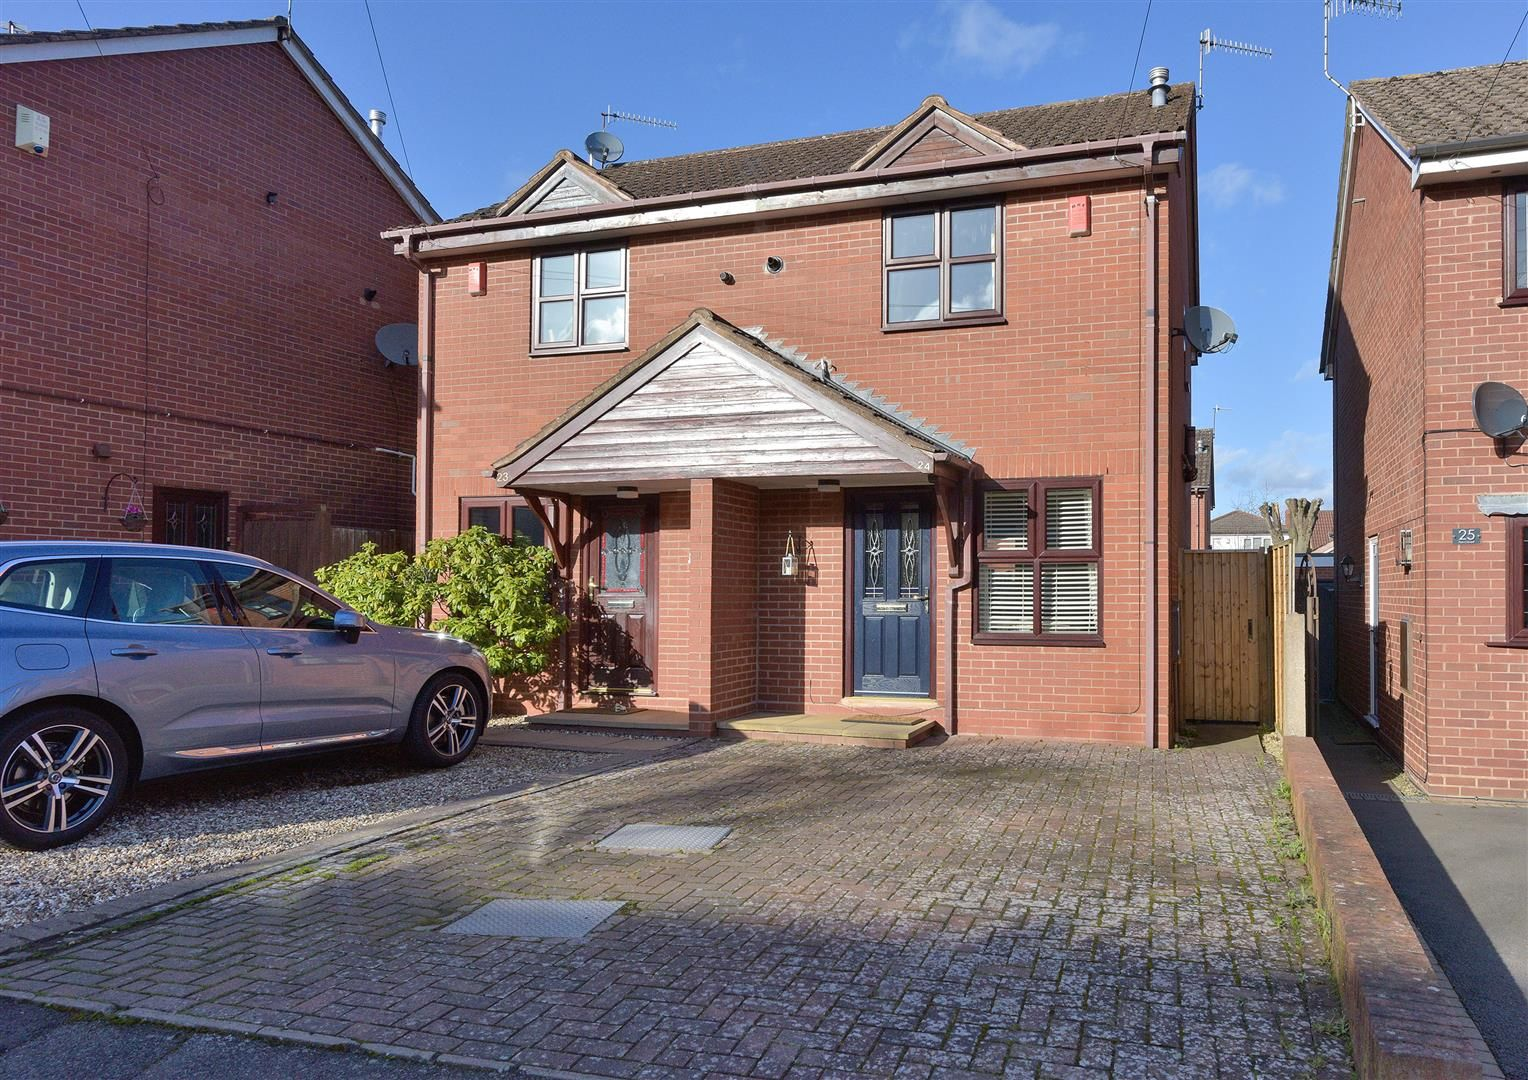 2 bed semi-detached for sale in Old Quarter, DY8